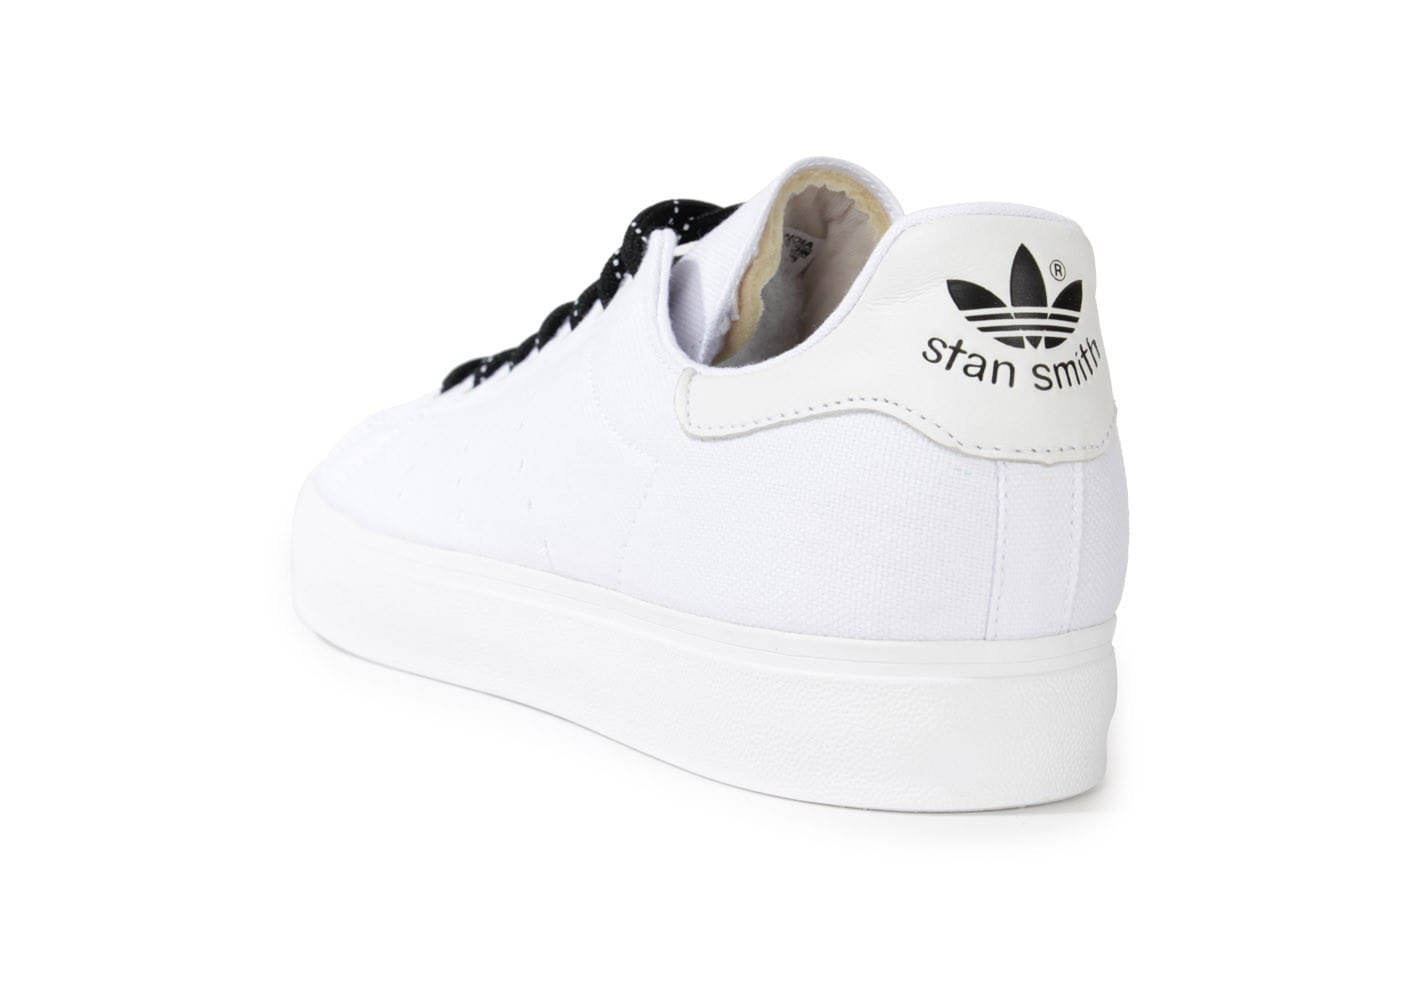 adidas stan smith toile blanche chaussures homme chausport. Black Bedroom Furniture Sets. Home Design Ideas